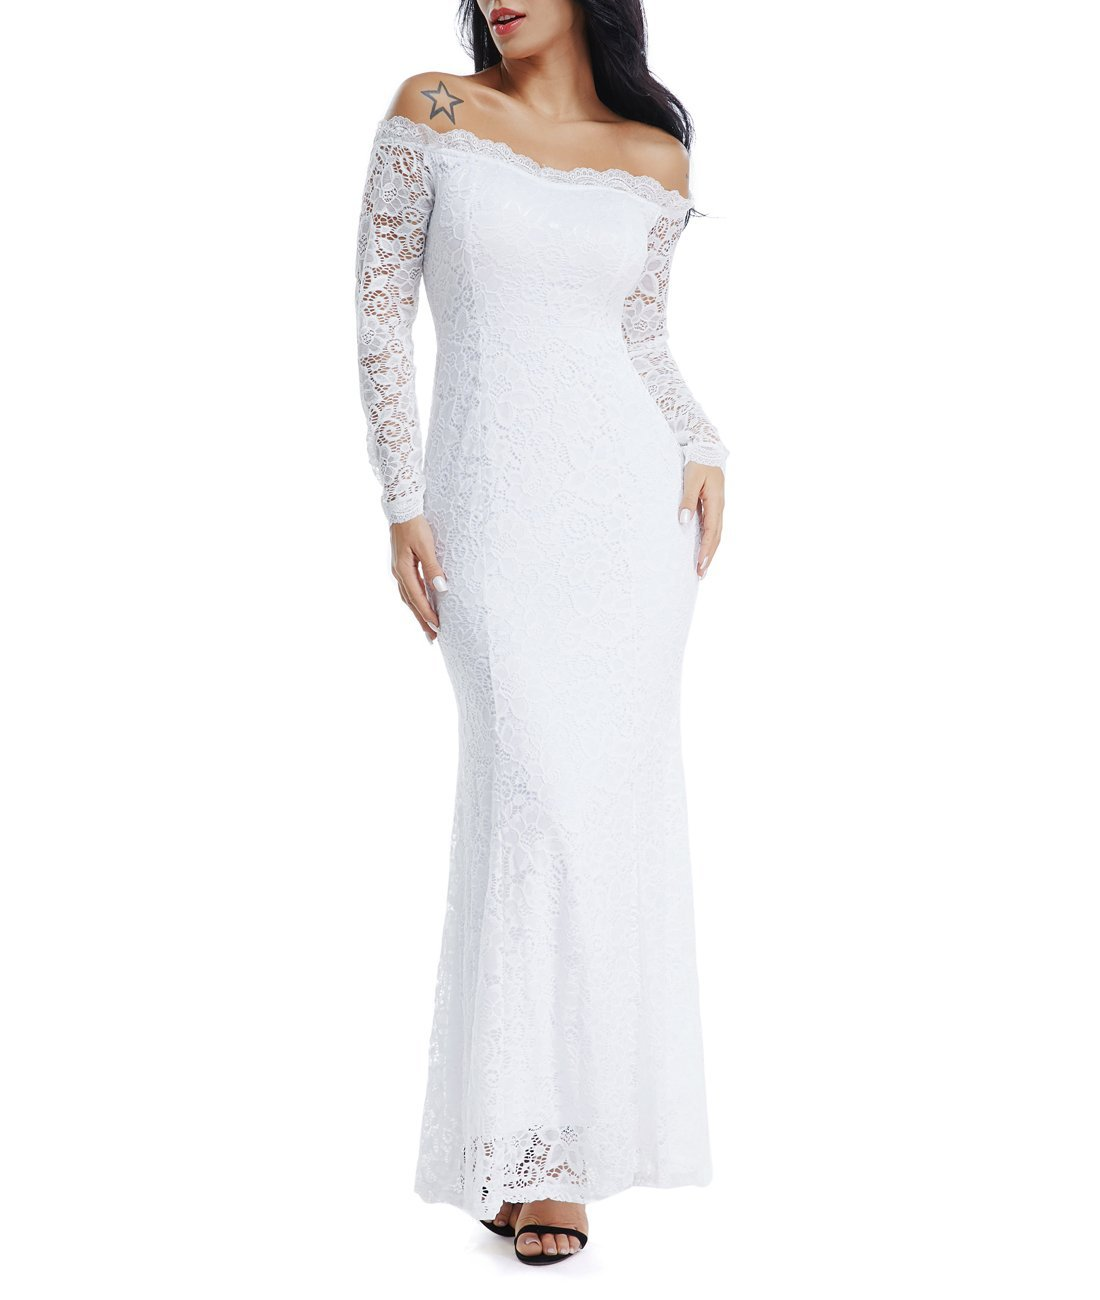 Lalagen Women's Floral Lace Long Sleeve Off Shoulder Wedding Mermaid Dress White1 S by Lalagen (Image #4)